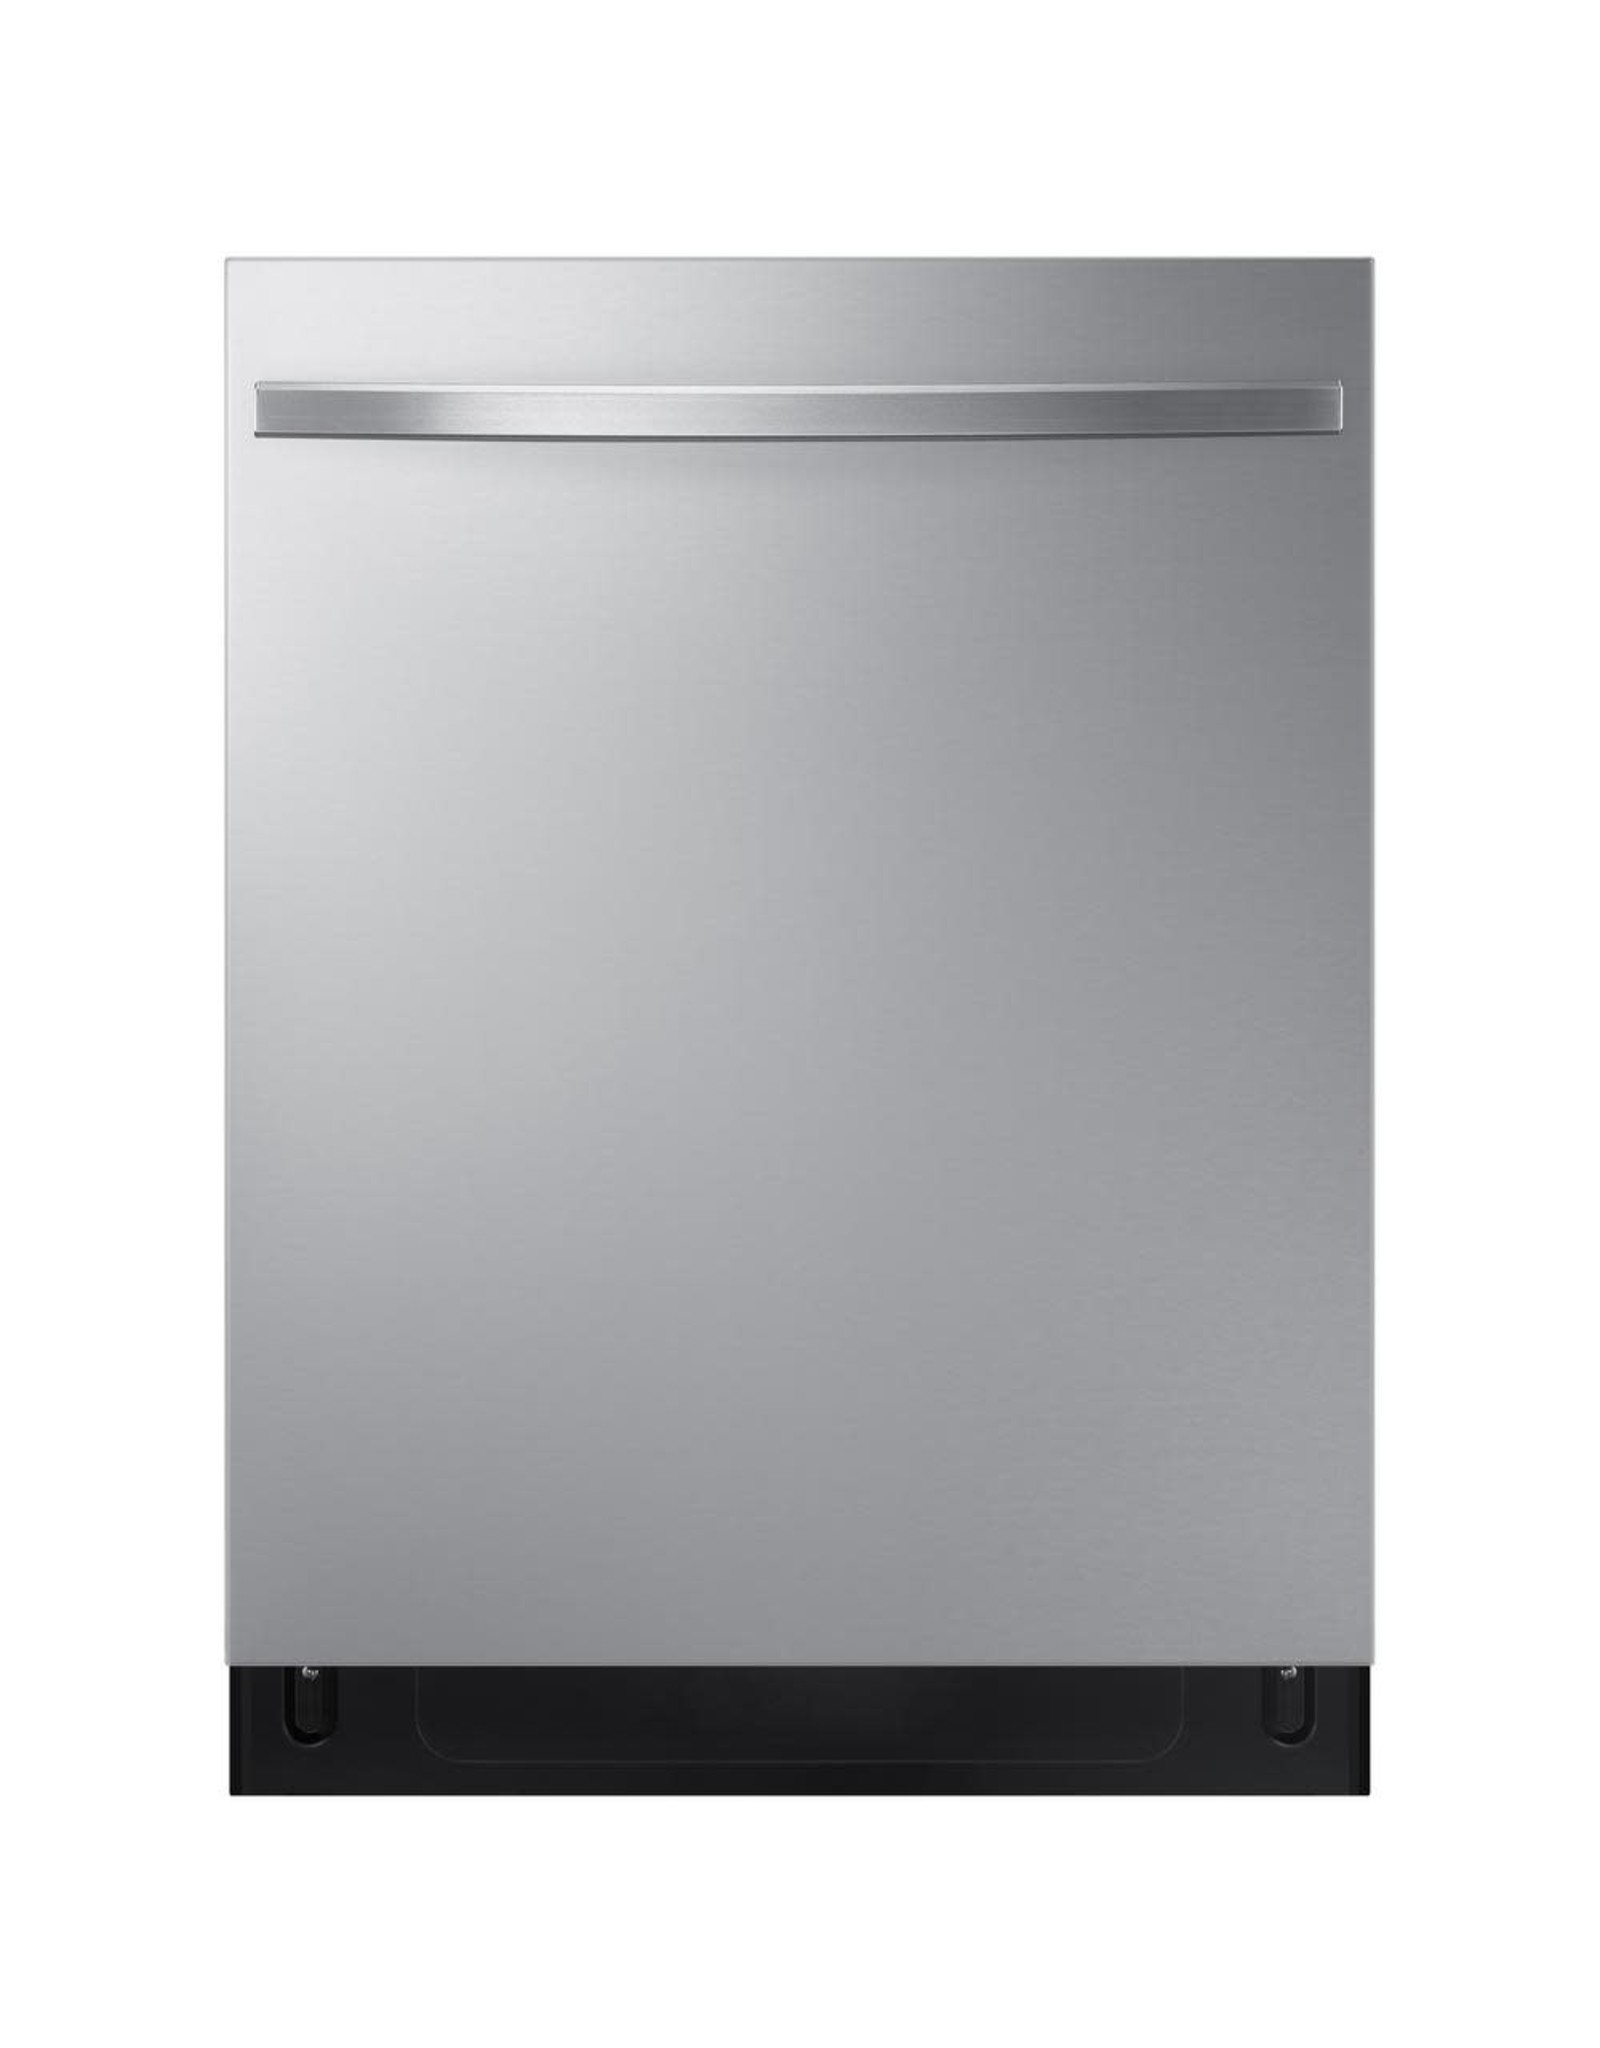 SAMSUNG DW80R5061US 24  in. Top Control Storm Wash Tall Tub Dishwasher in Fingerprint Resistant Stainless Steel with Auto Release Dry, 48 dBA